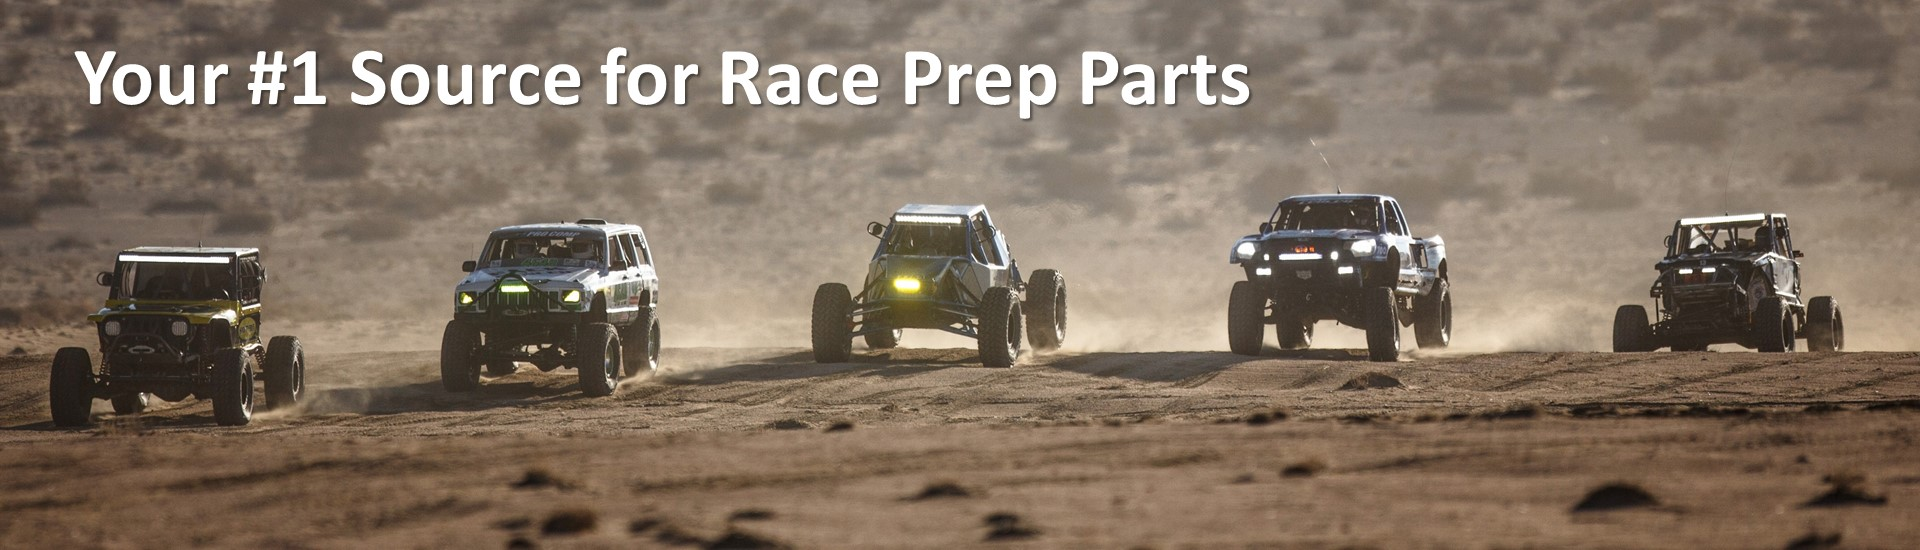 race-parts-page-banner.jpg